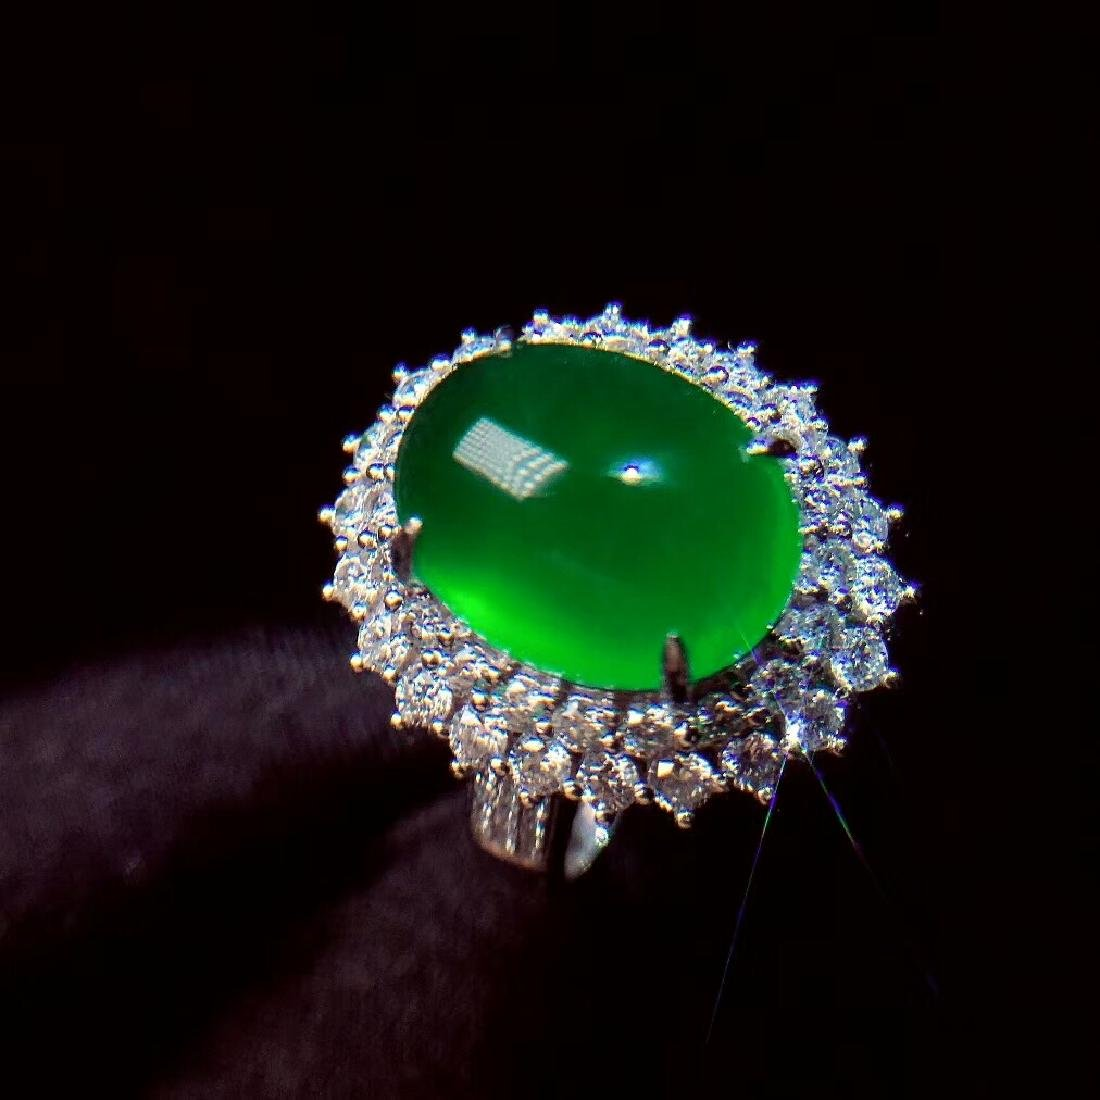 7.6ct Emerald Ring in 18kt White Gold - 2